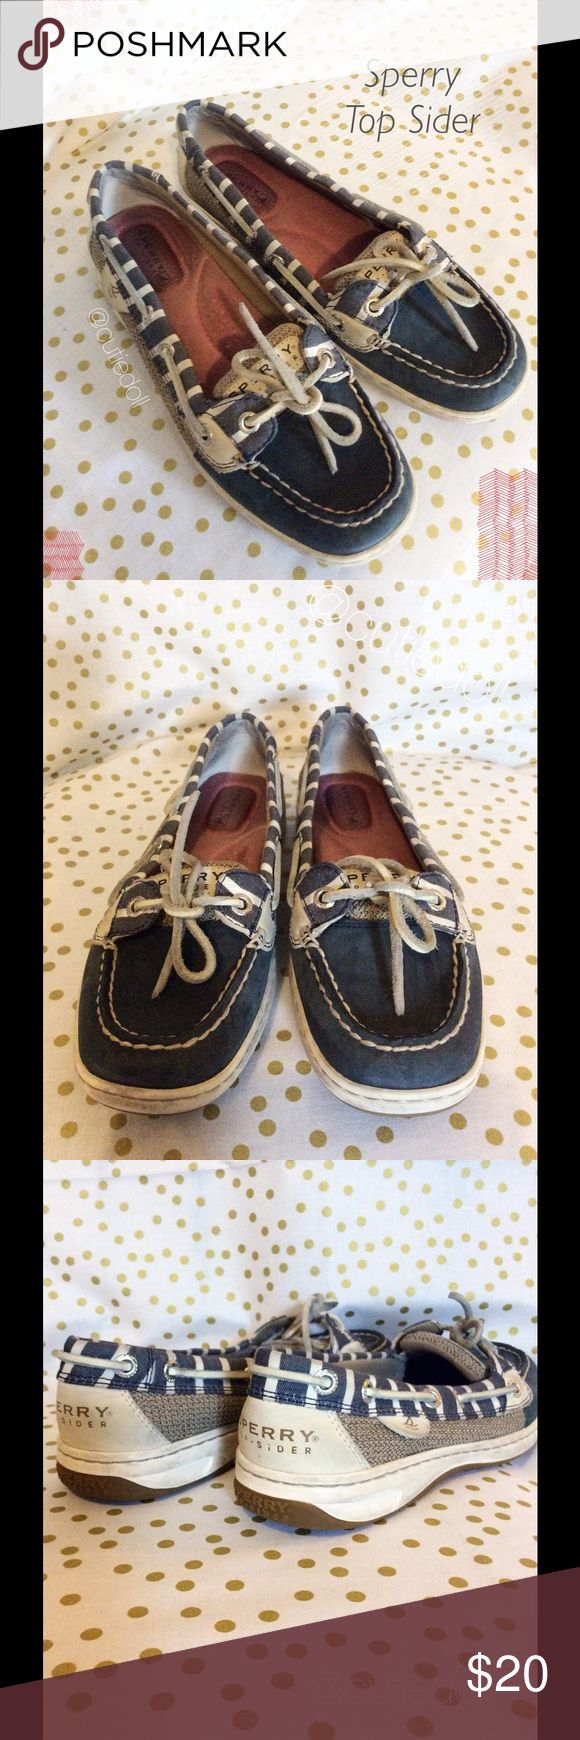 ❣️NEW ARRIVAL❣️✨Sperry Top Sider Boat Shoes✨ Ladies Sperry Top Siders.🔸light blemishes inside  and out🔸lots of soft cushion inside🔸color: deep indigo blue/ linen white / pink inside 🔸leather and canvas🔸size: 5.5 🌟 I accept REASONABLE offers ✨ 💠 You receive %15 off 2+ bundles 💕 💫 Next day shipper 💫 ❌ No Trades ❌  HAPPY POSHING 🍹🛍 Sperry Top-Sider Shoes Sneakers